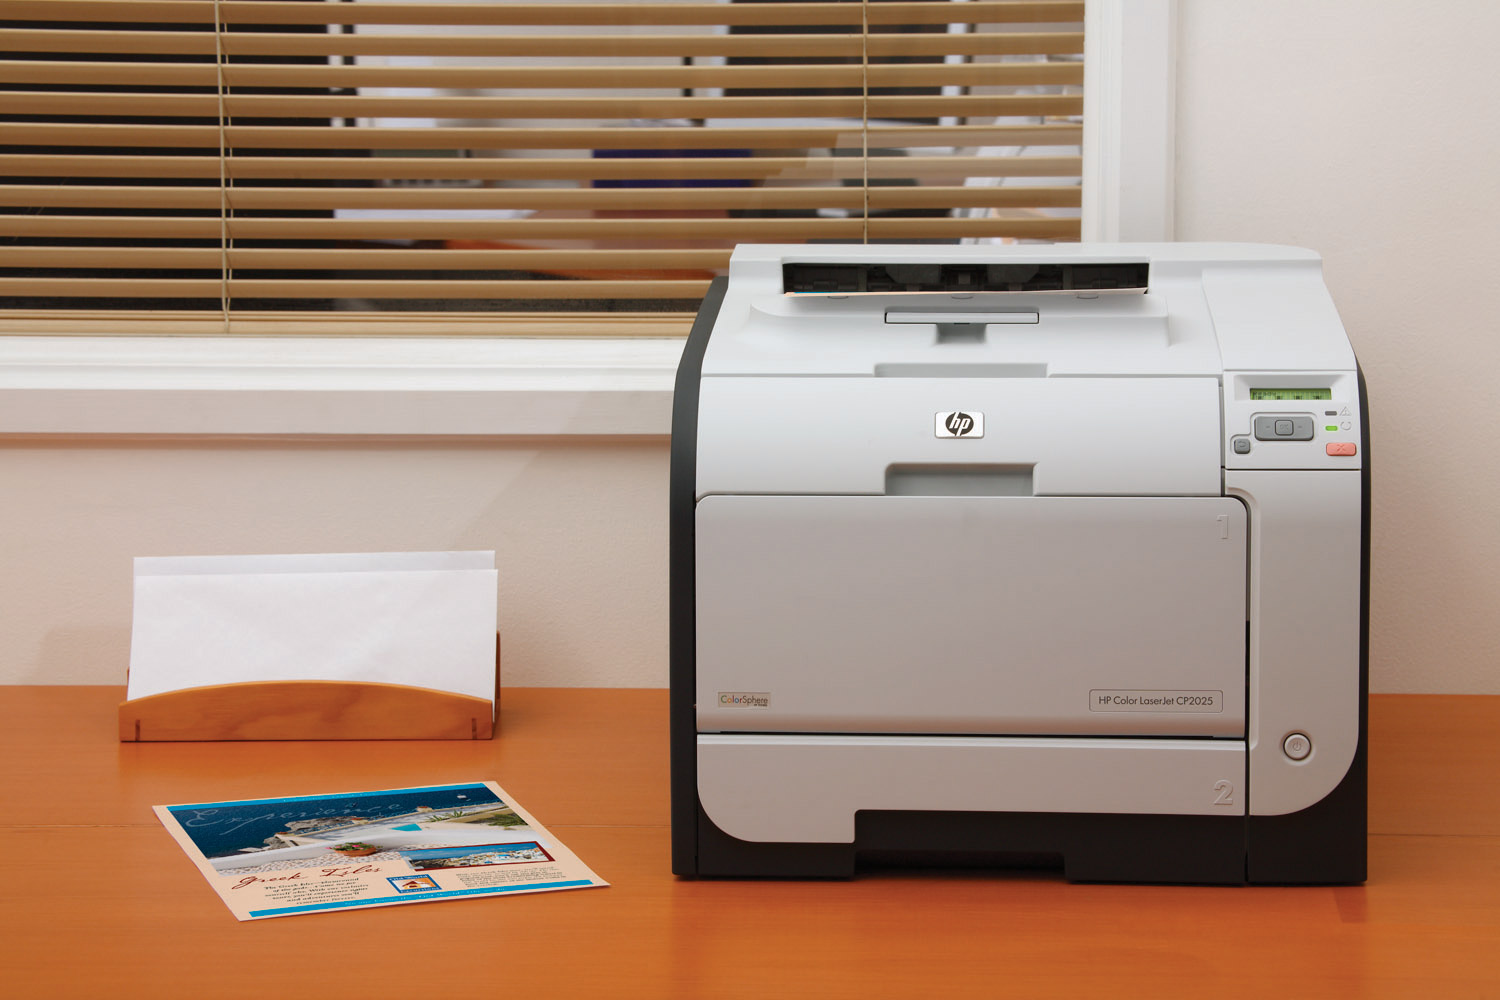 HP LaserJet CP2025n Printer